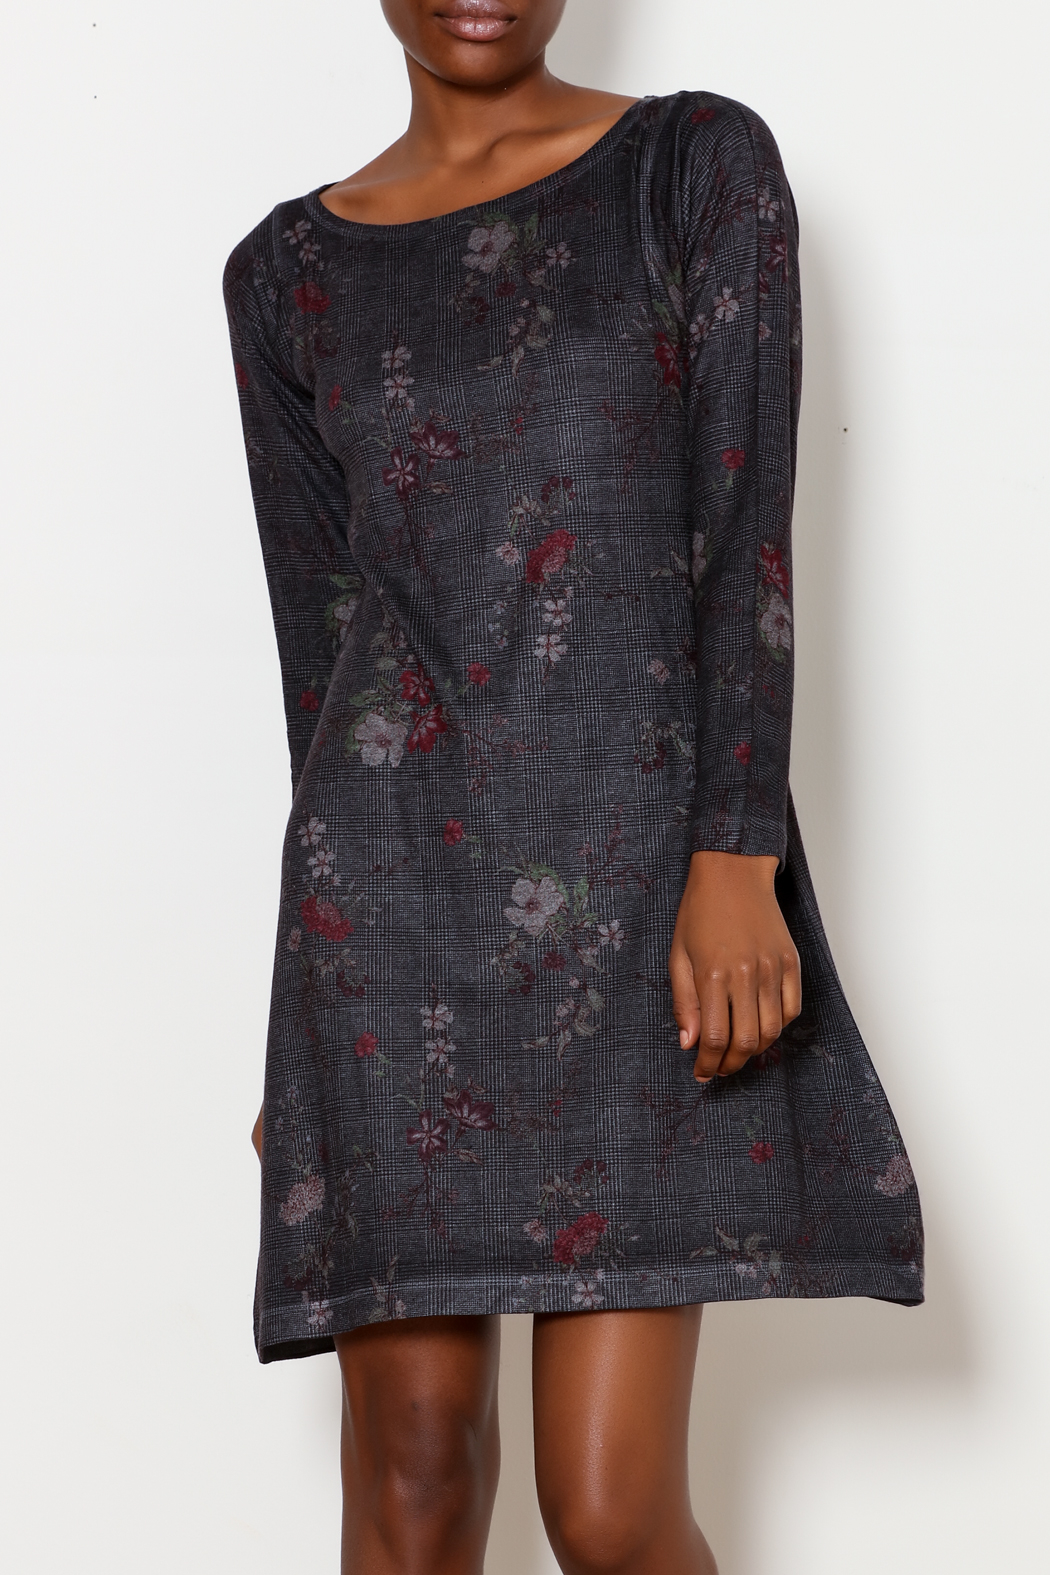 Nally & Millie Houndstooth Floral Print Dress - Main Image